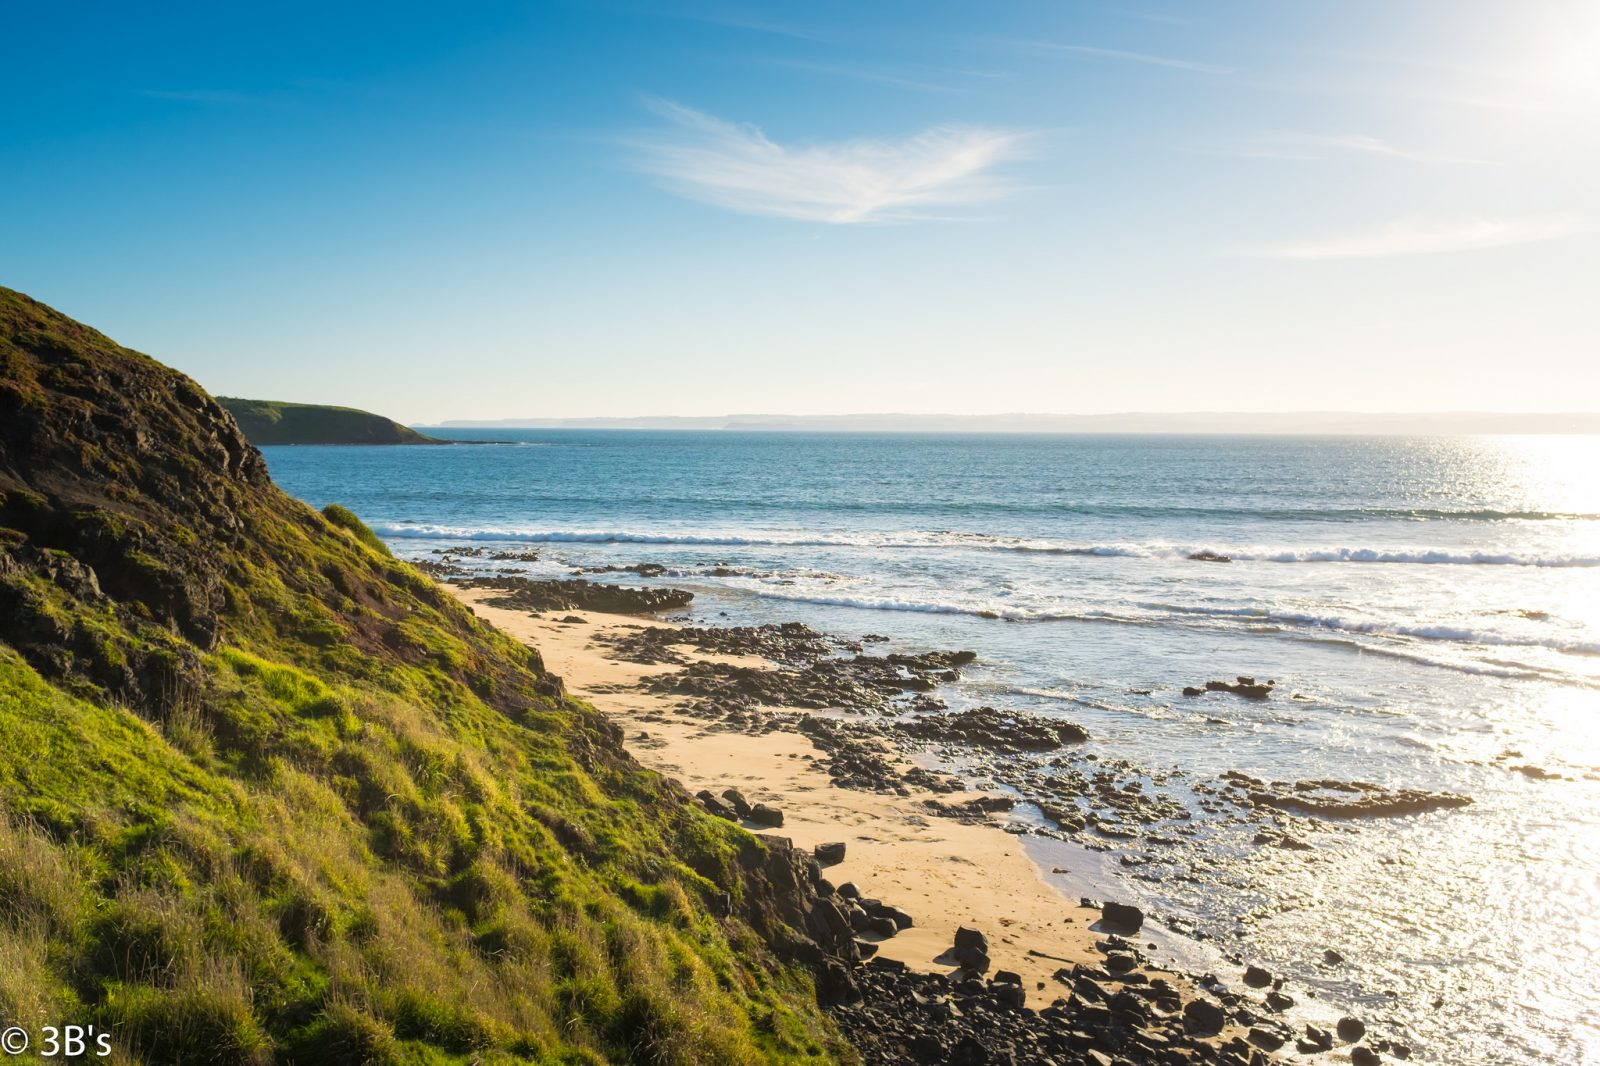 day trips from Melbourne: Phillip Island coastline. Photo by The 3B's via Flickr CC.